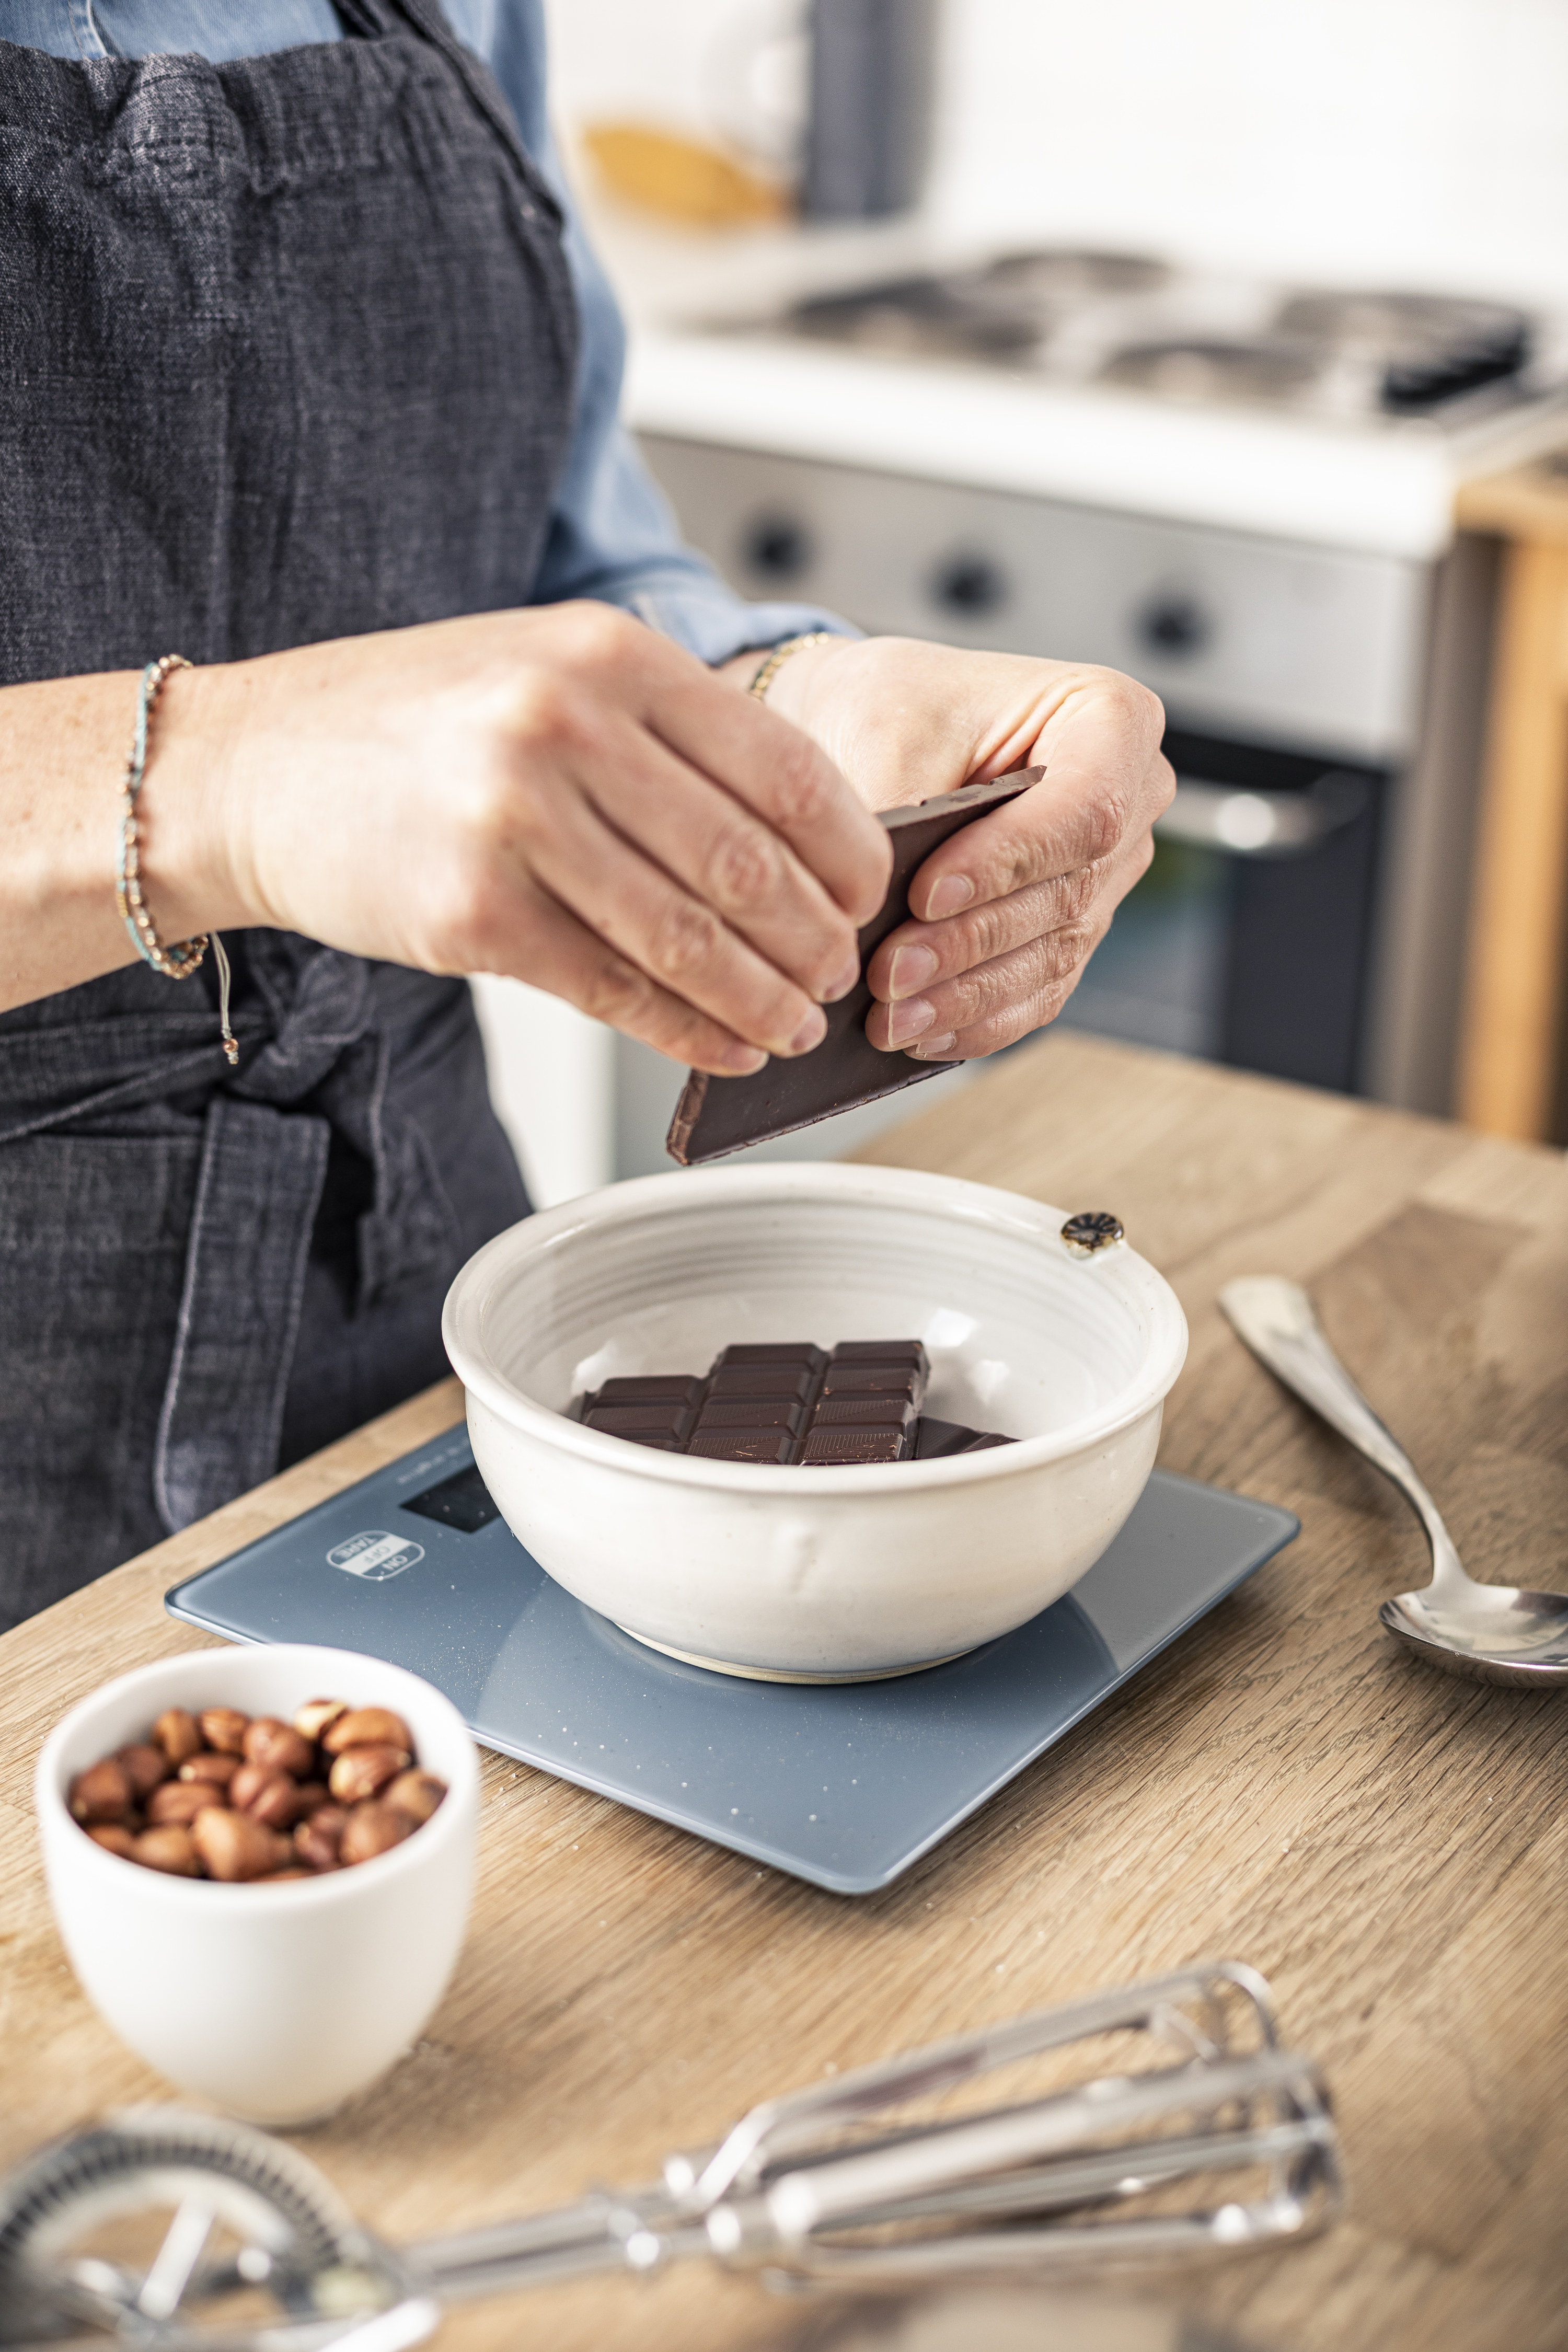 Woman measuring chocolate for a recipe